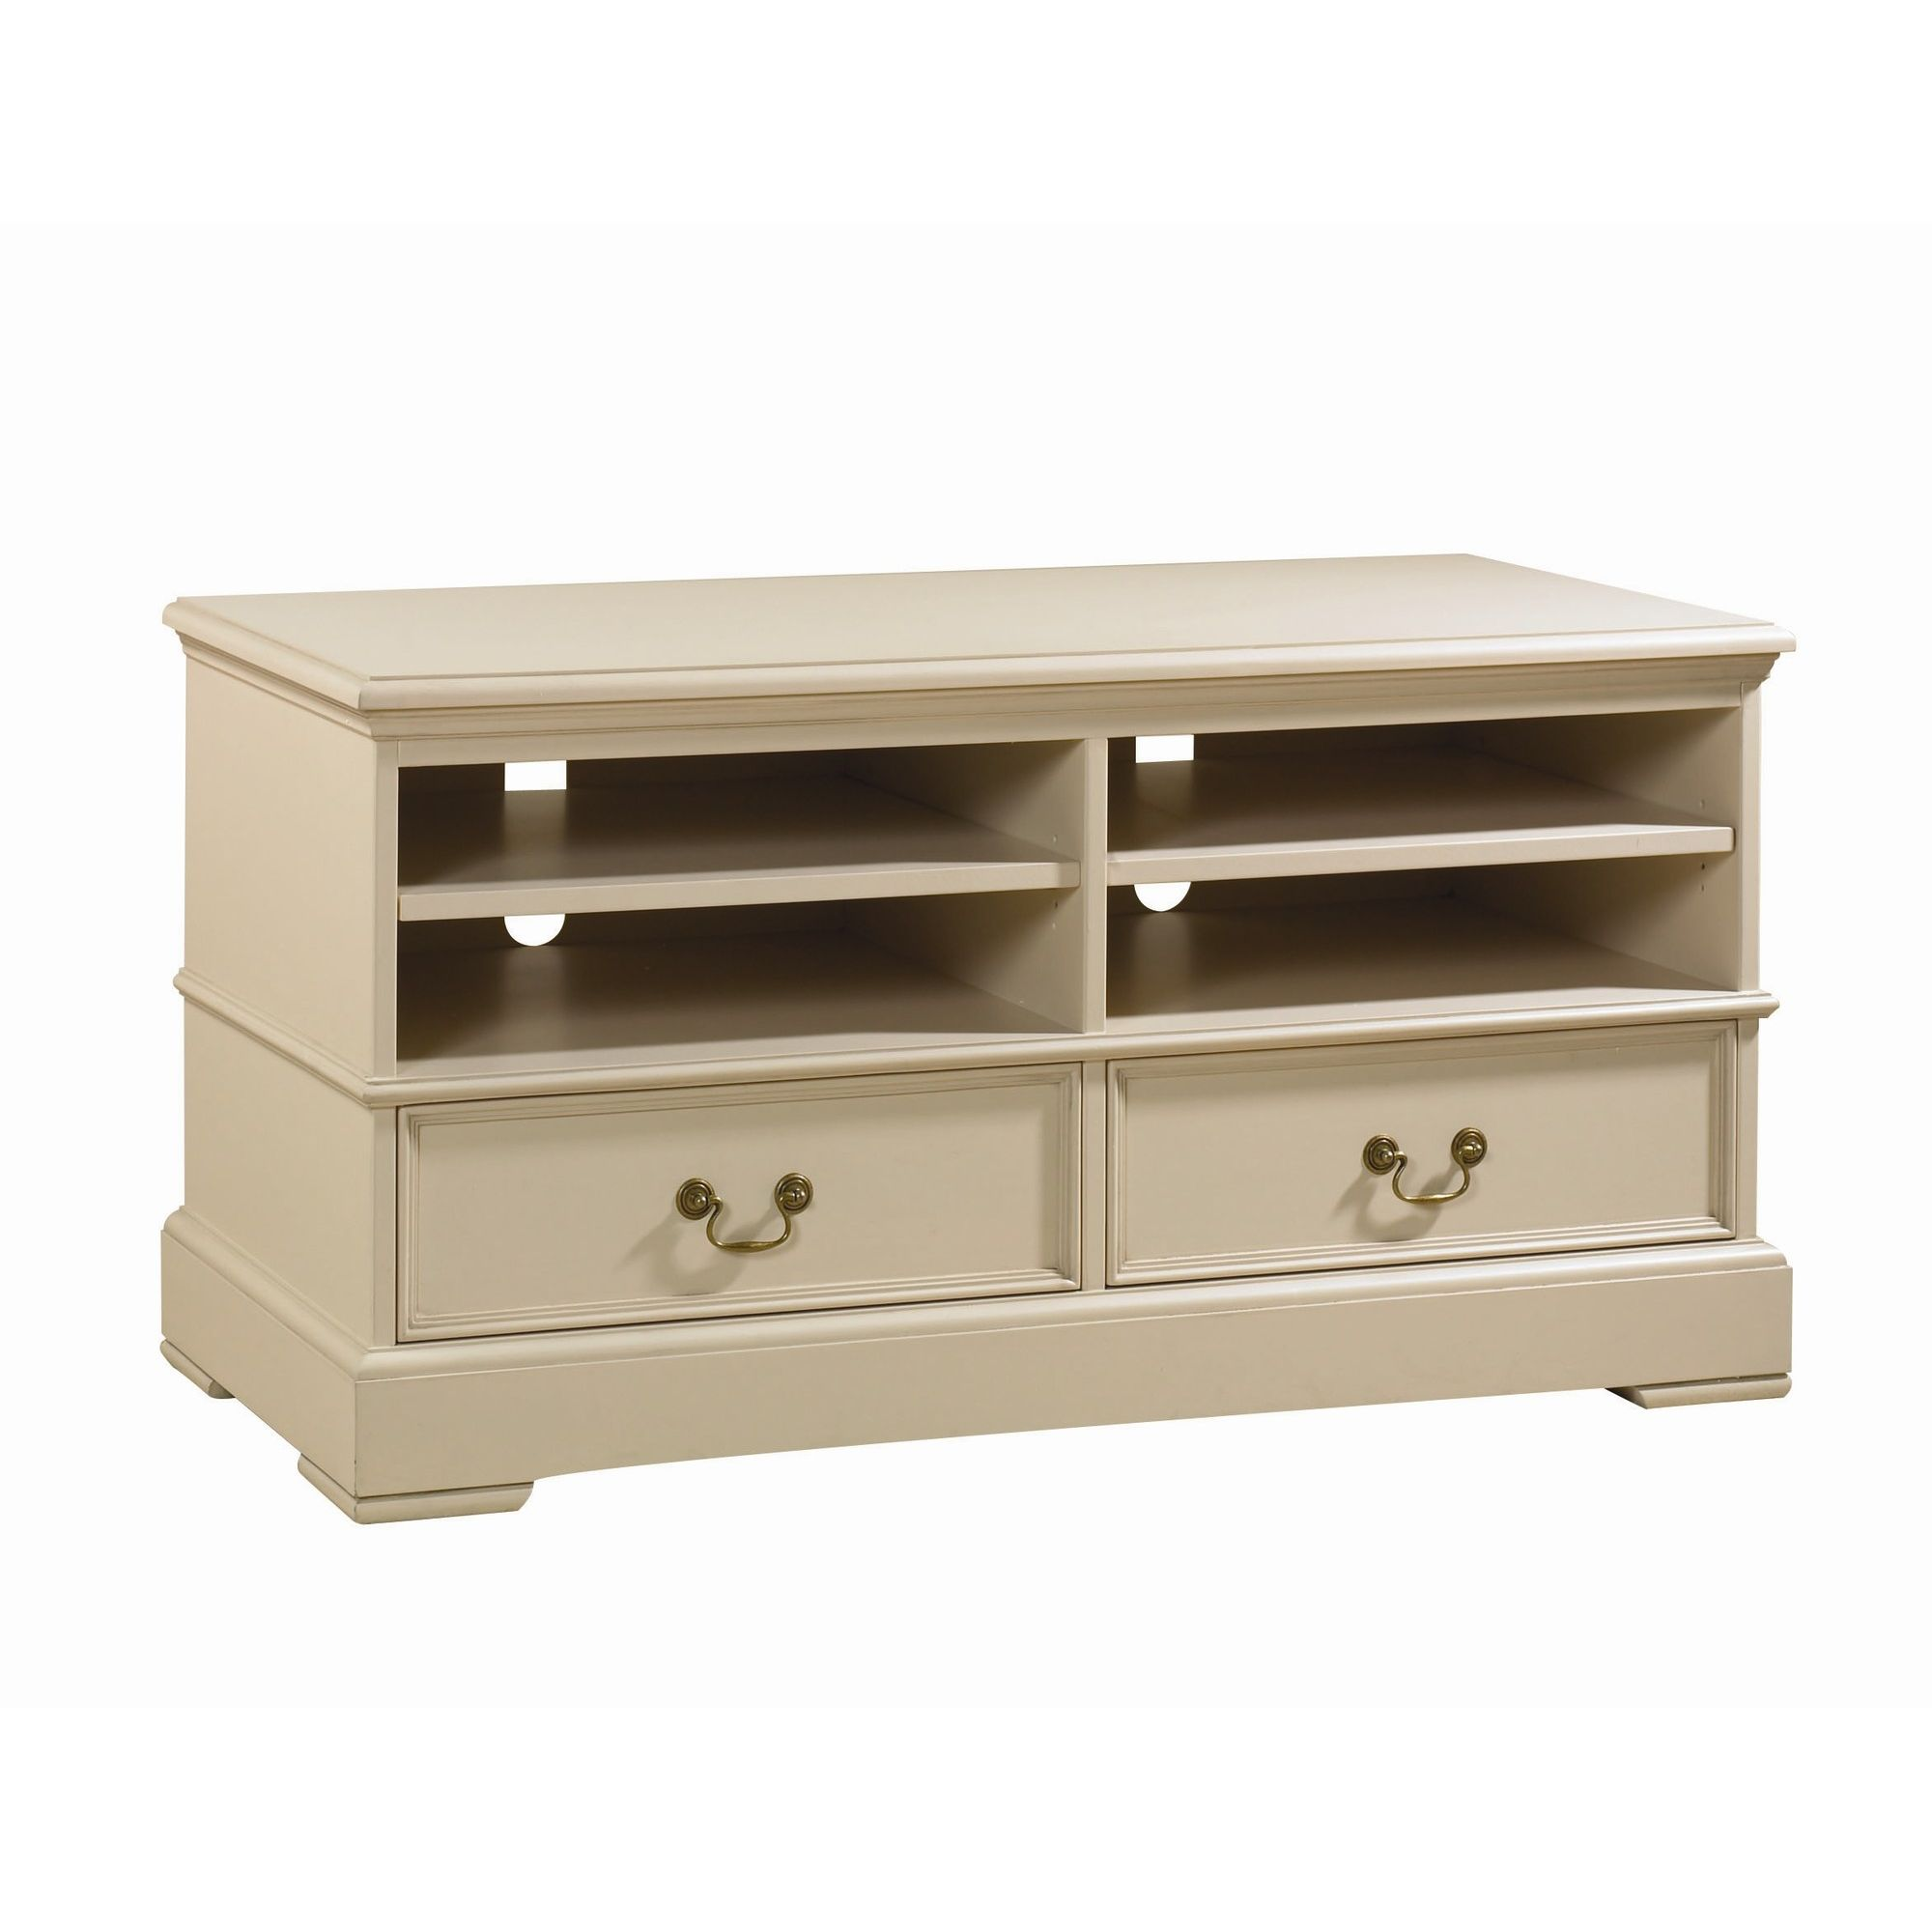 YP Furniture Country House TV Unit - Ivory at Tesco Direct